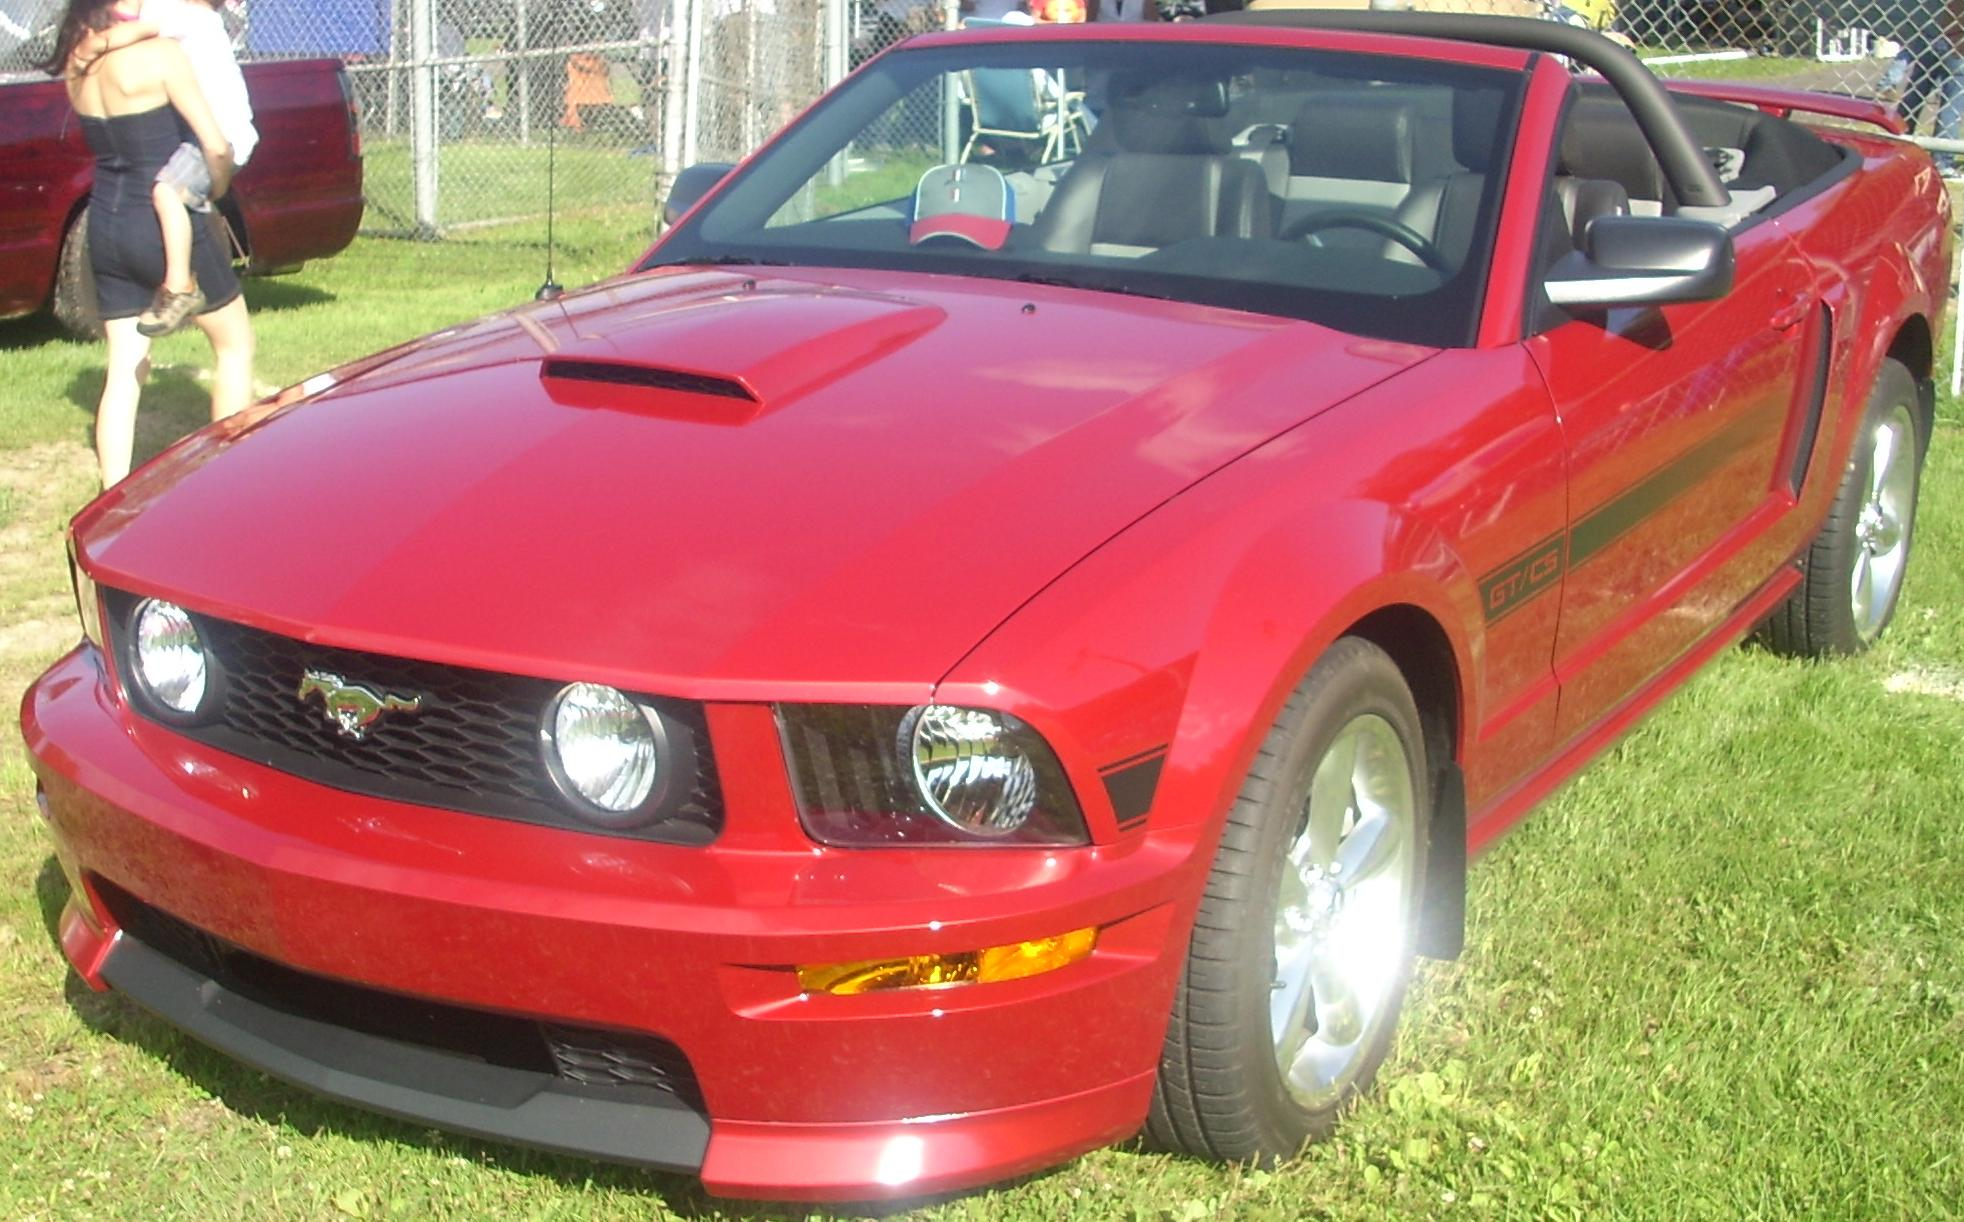 hight resolution of archivo 05 09 ford mustang gt cs convertible rigaud